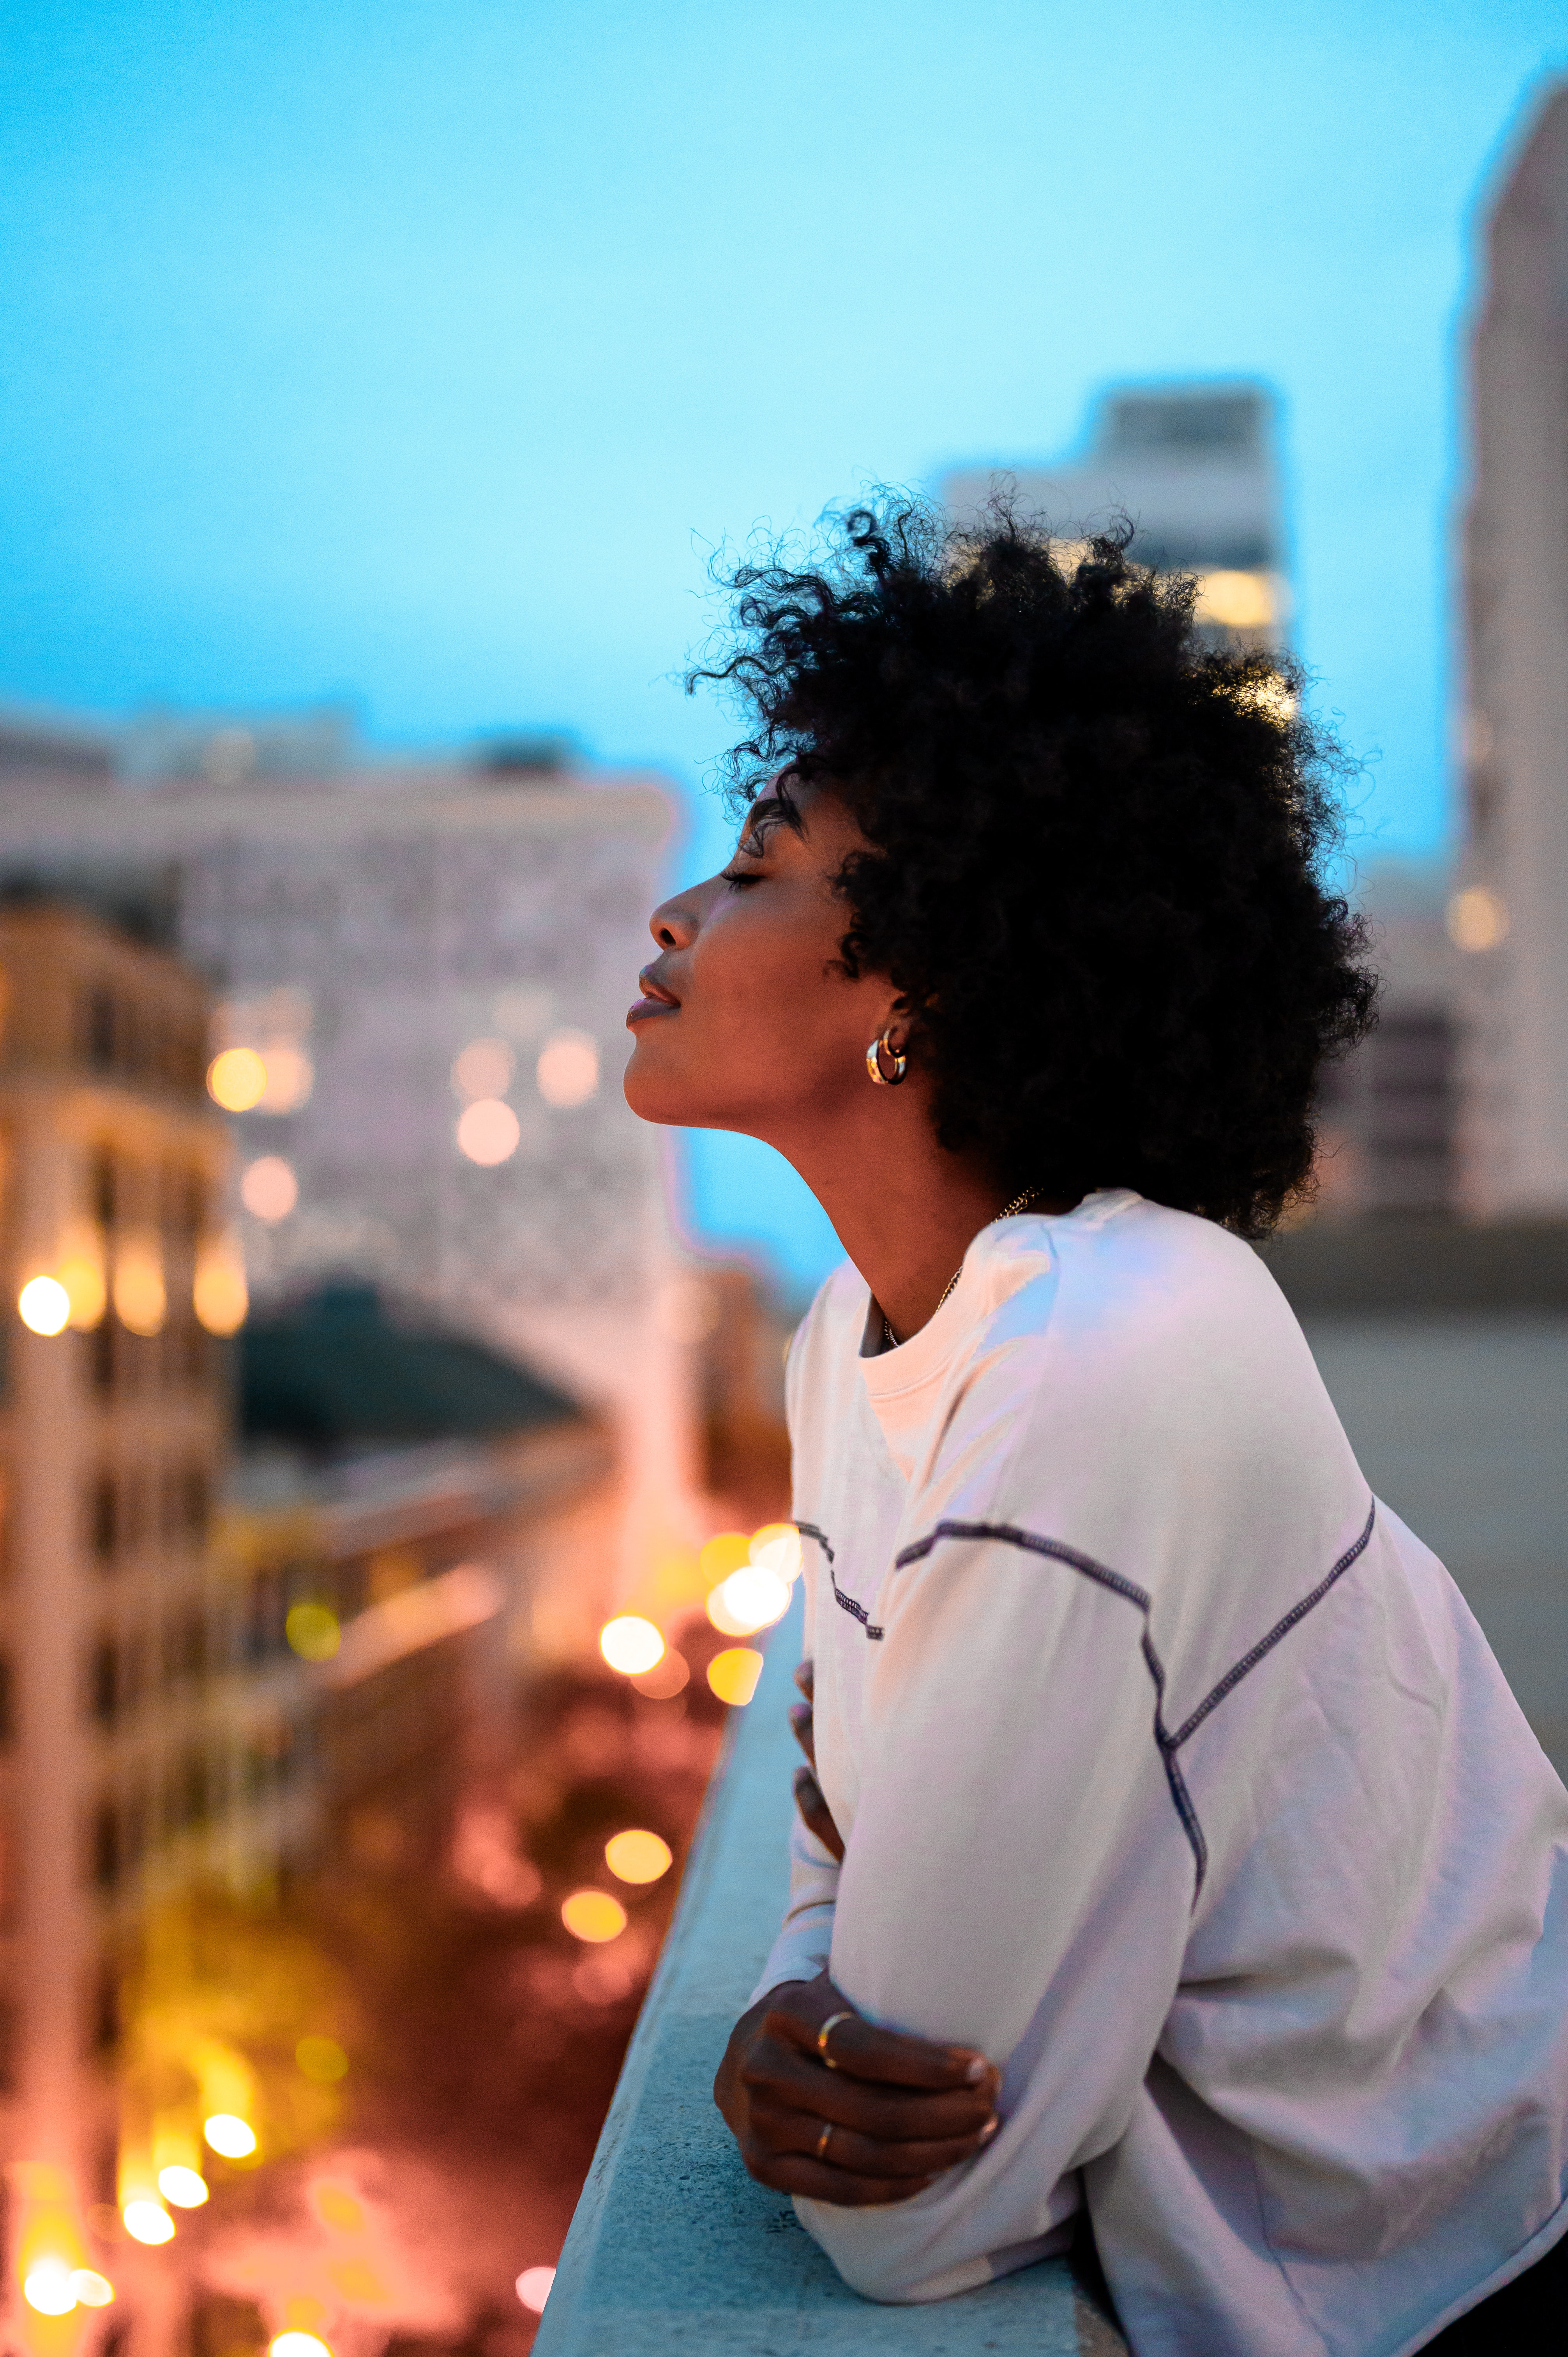 black woman with closed eyes leans against a balcony railing with evening city scene in background